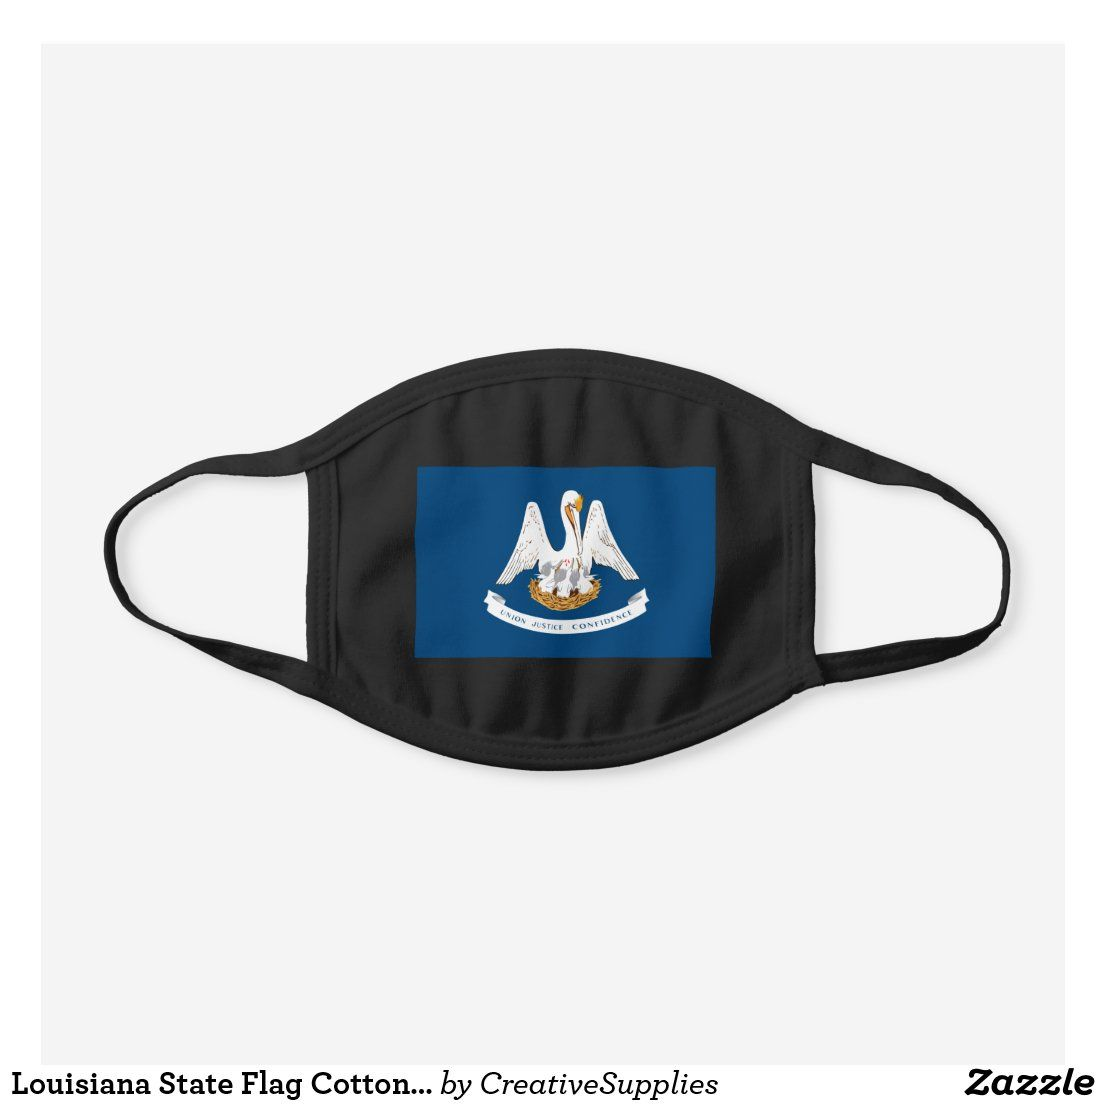 Louisiana State Flag Cotton Face Mask Zazzle Com In 2020 Face Mask Louisiana State Flags